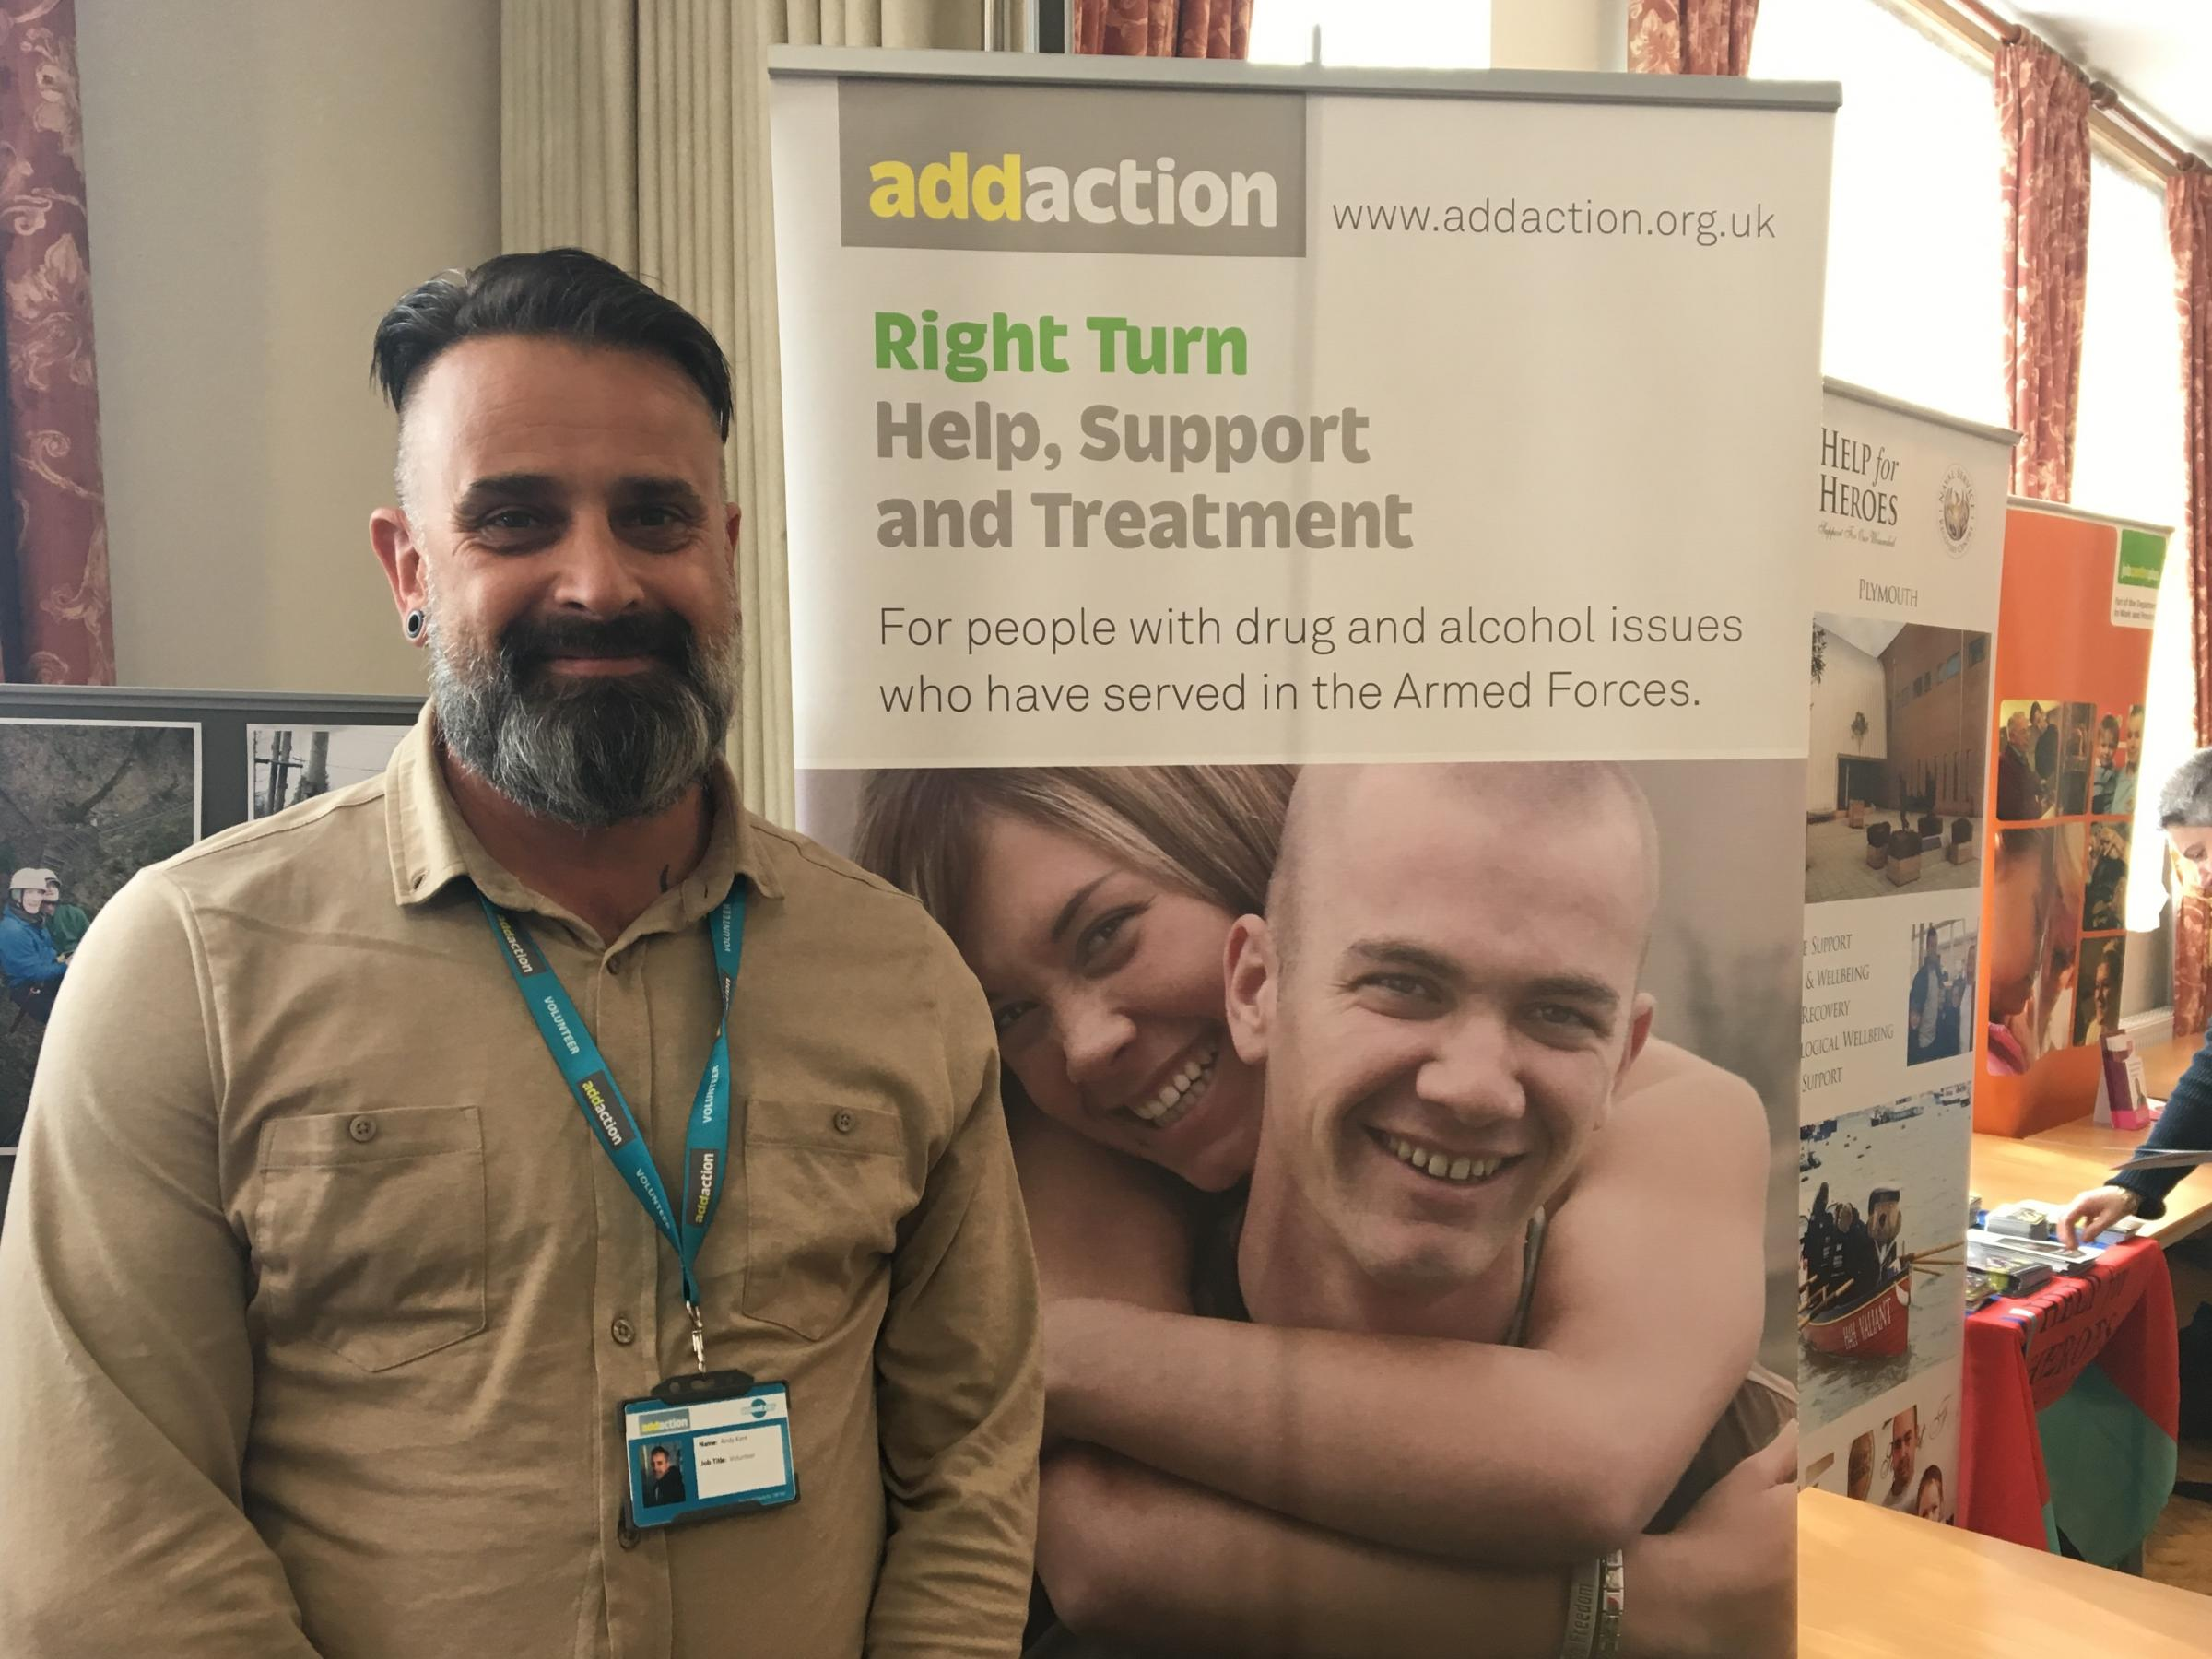 Andy Kent, who works for Addaction